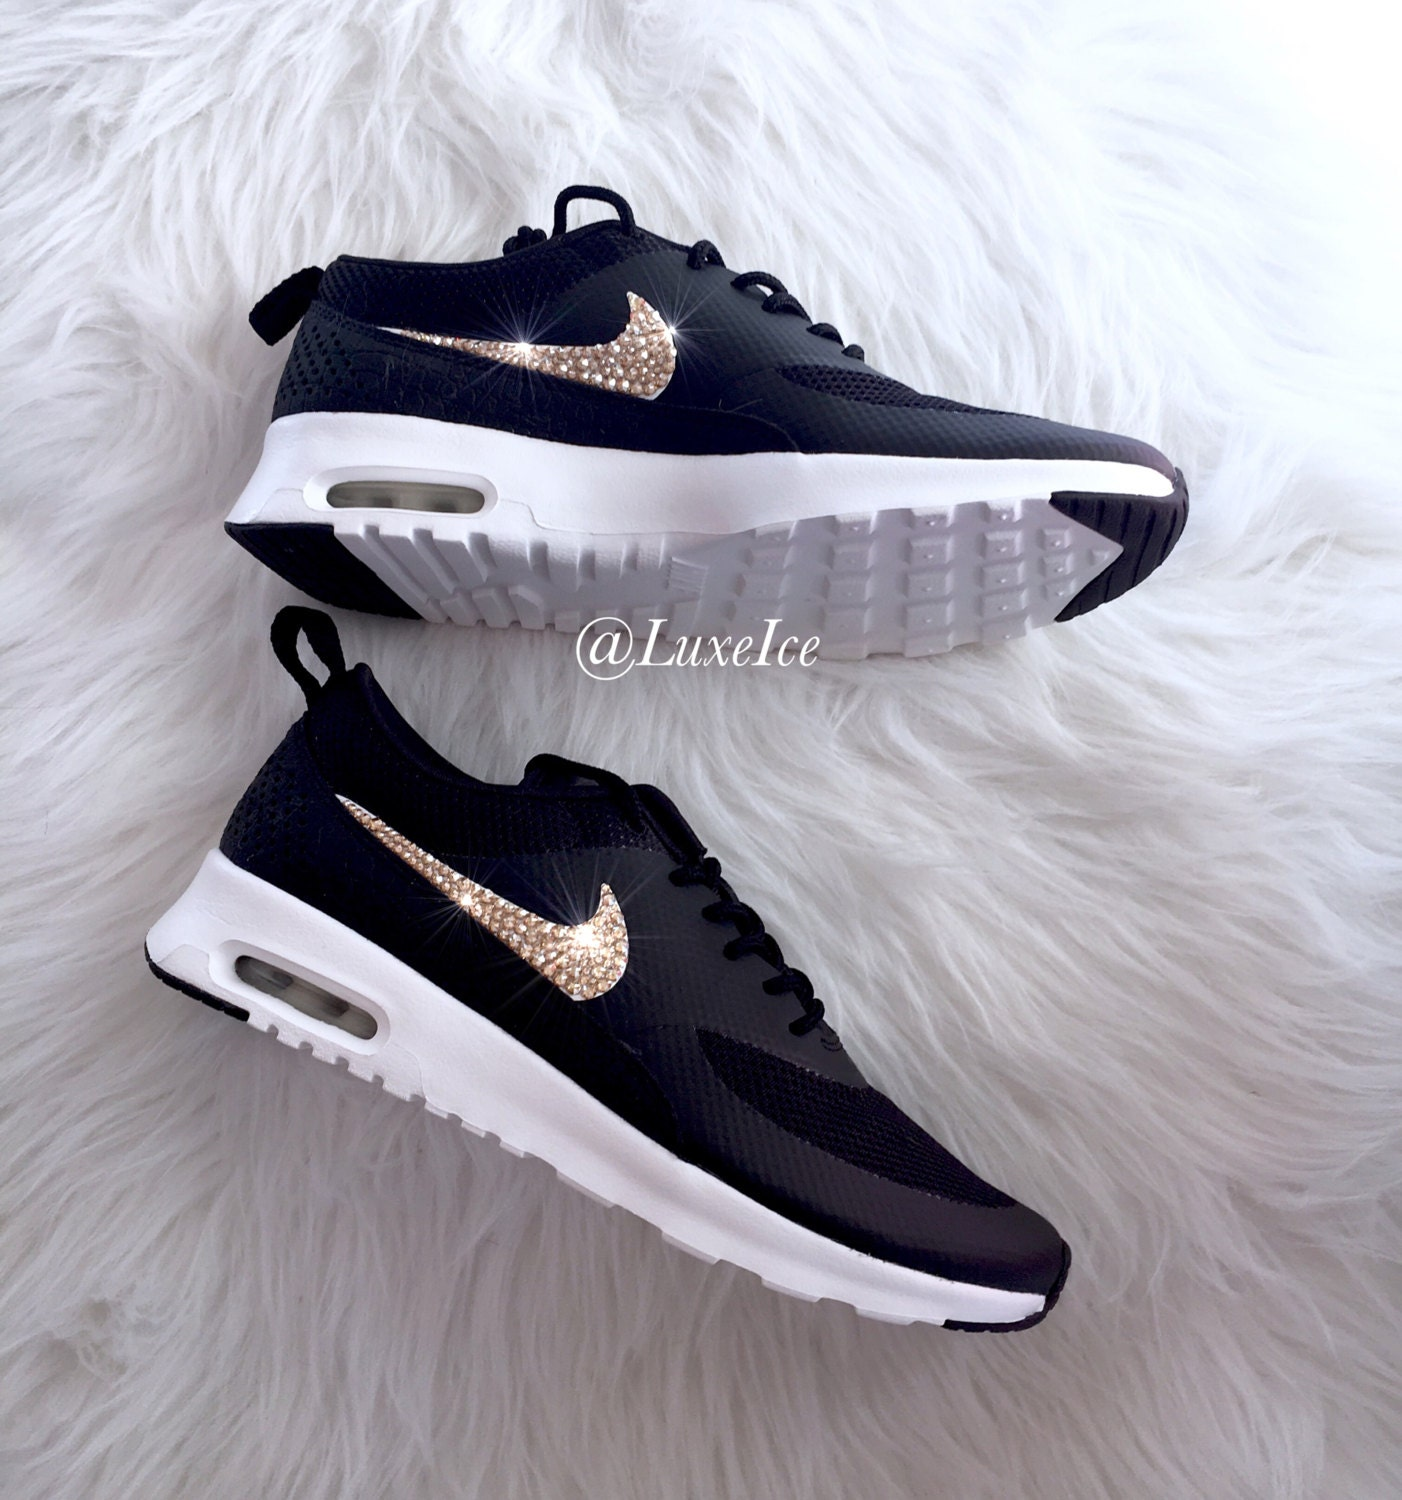 Nike Air Max Thea Black/Anthracite/White/Wolf Grey with